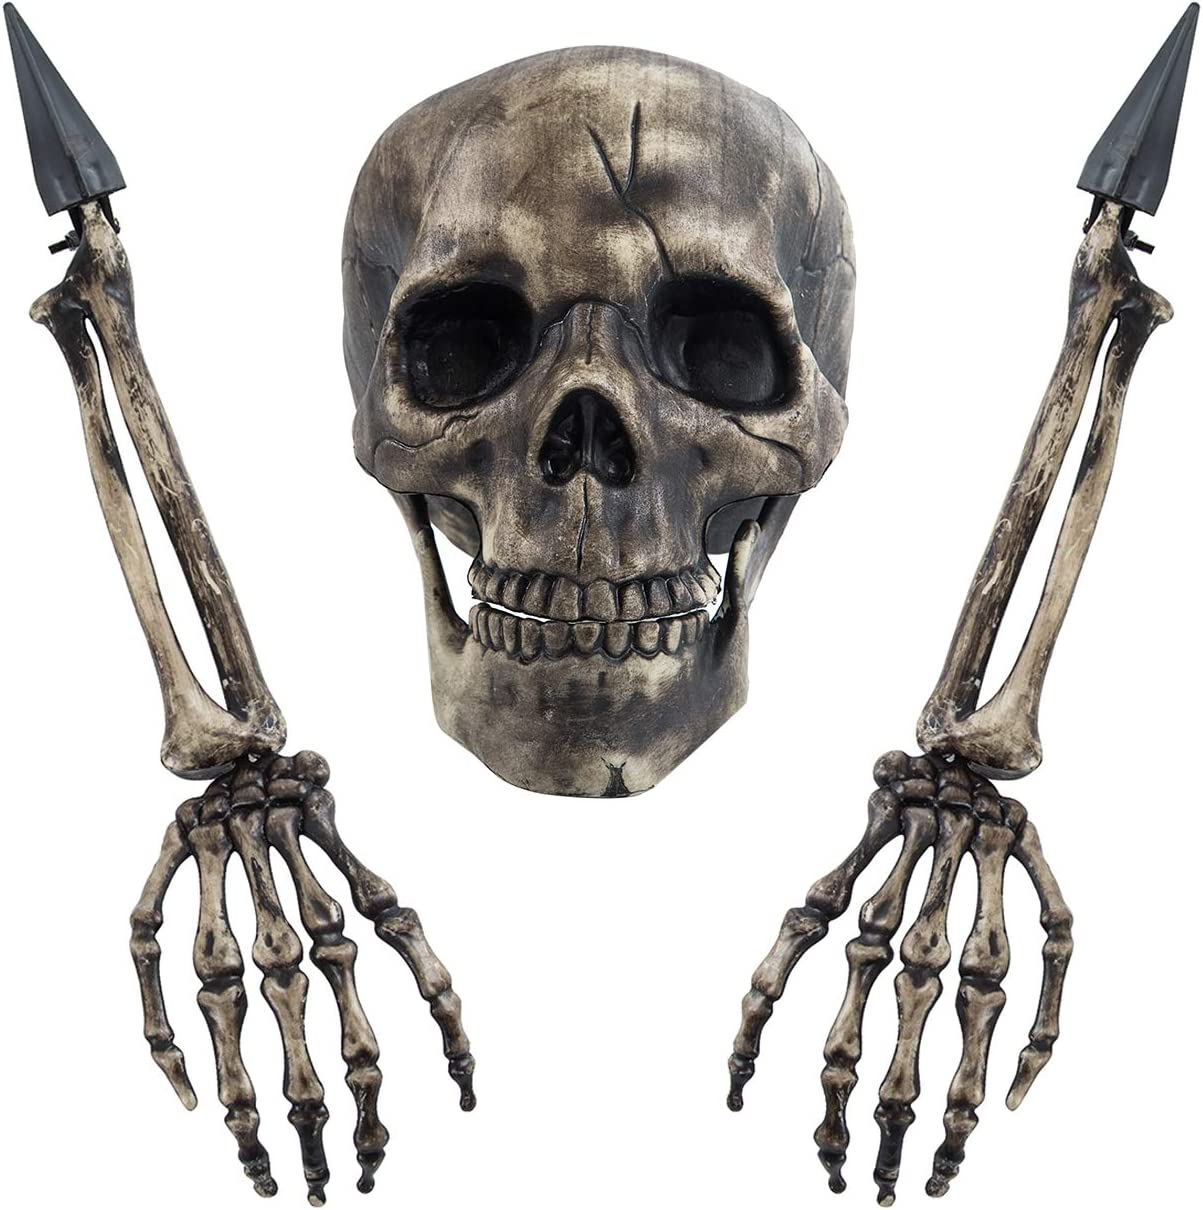 Sunnyglade Realistic Skeleton Stakes Halloween Decoration Scary Ground Breaker Skull and Skeleton for Outdoor Yard Lawn Stake Garden Graveyard Decoration: Garden & Outdoor